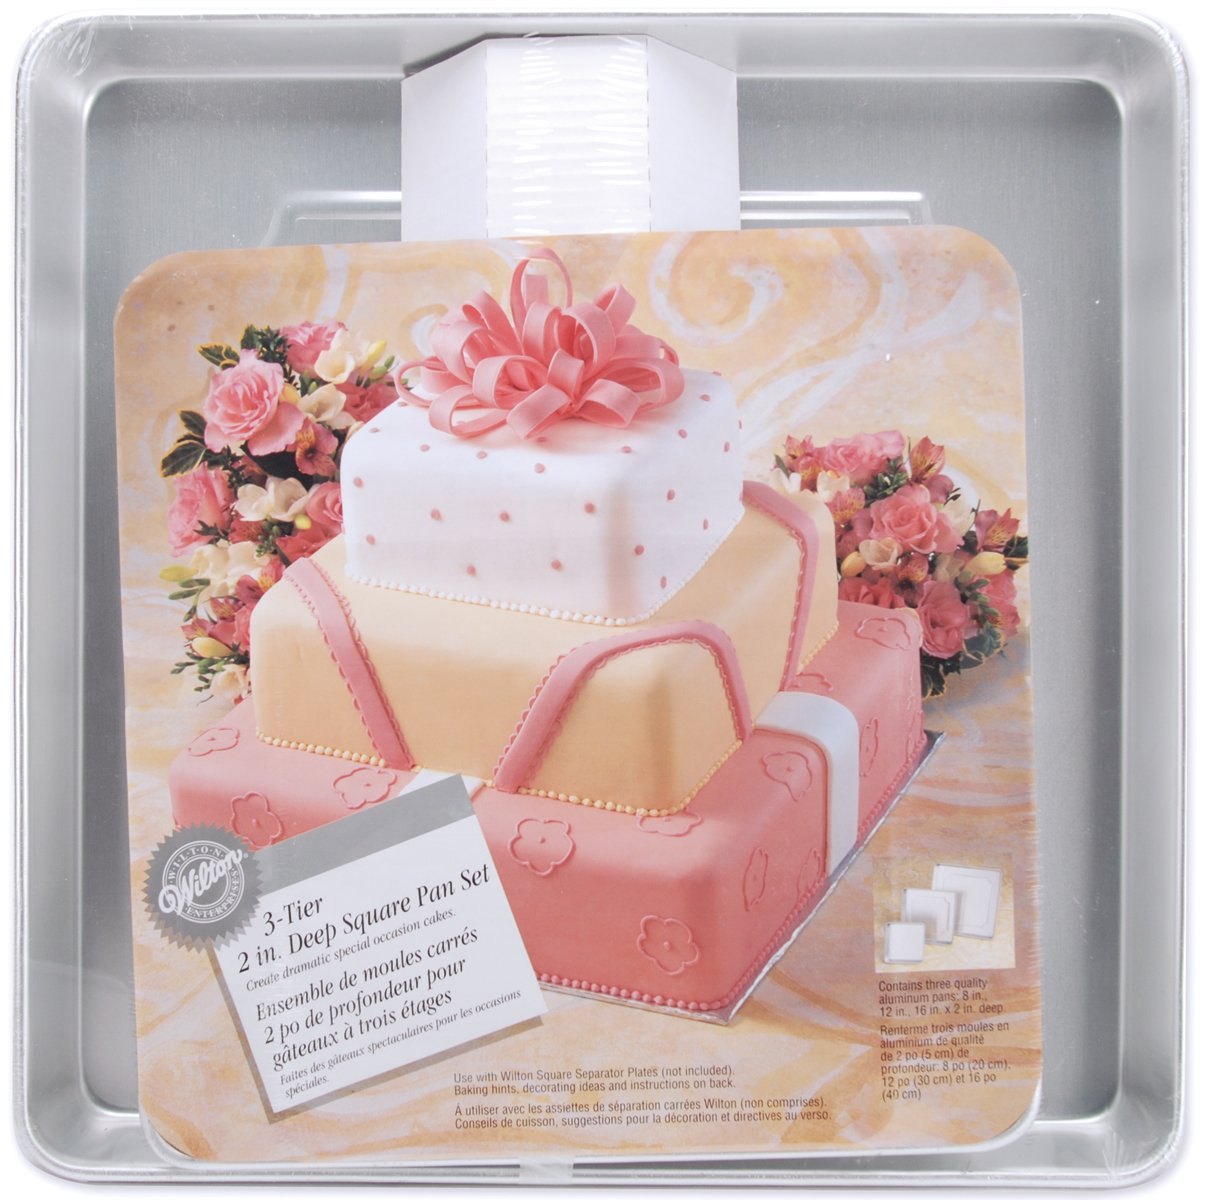 Wilton Performance Pans Square Cake Pans Set, 3 Piece - 8, 12 and 16-Inch Cake Pans by Wilton